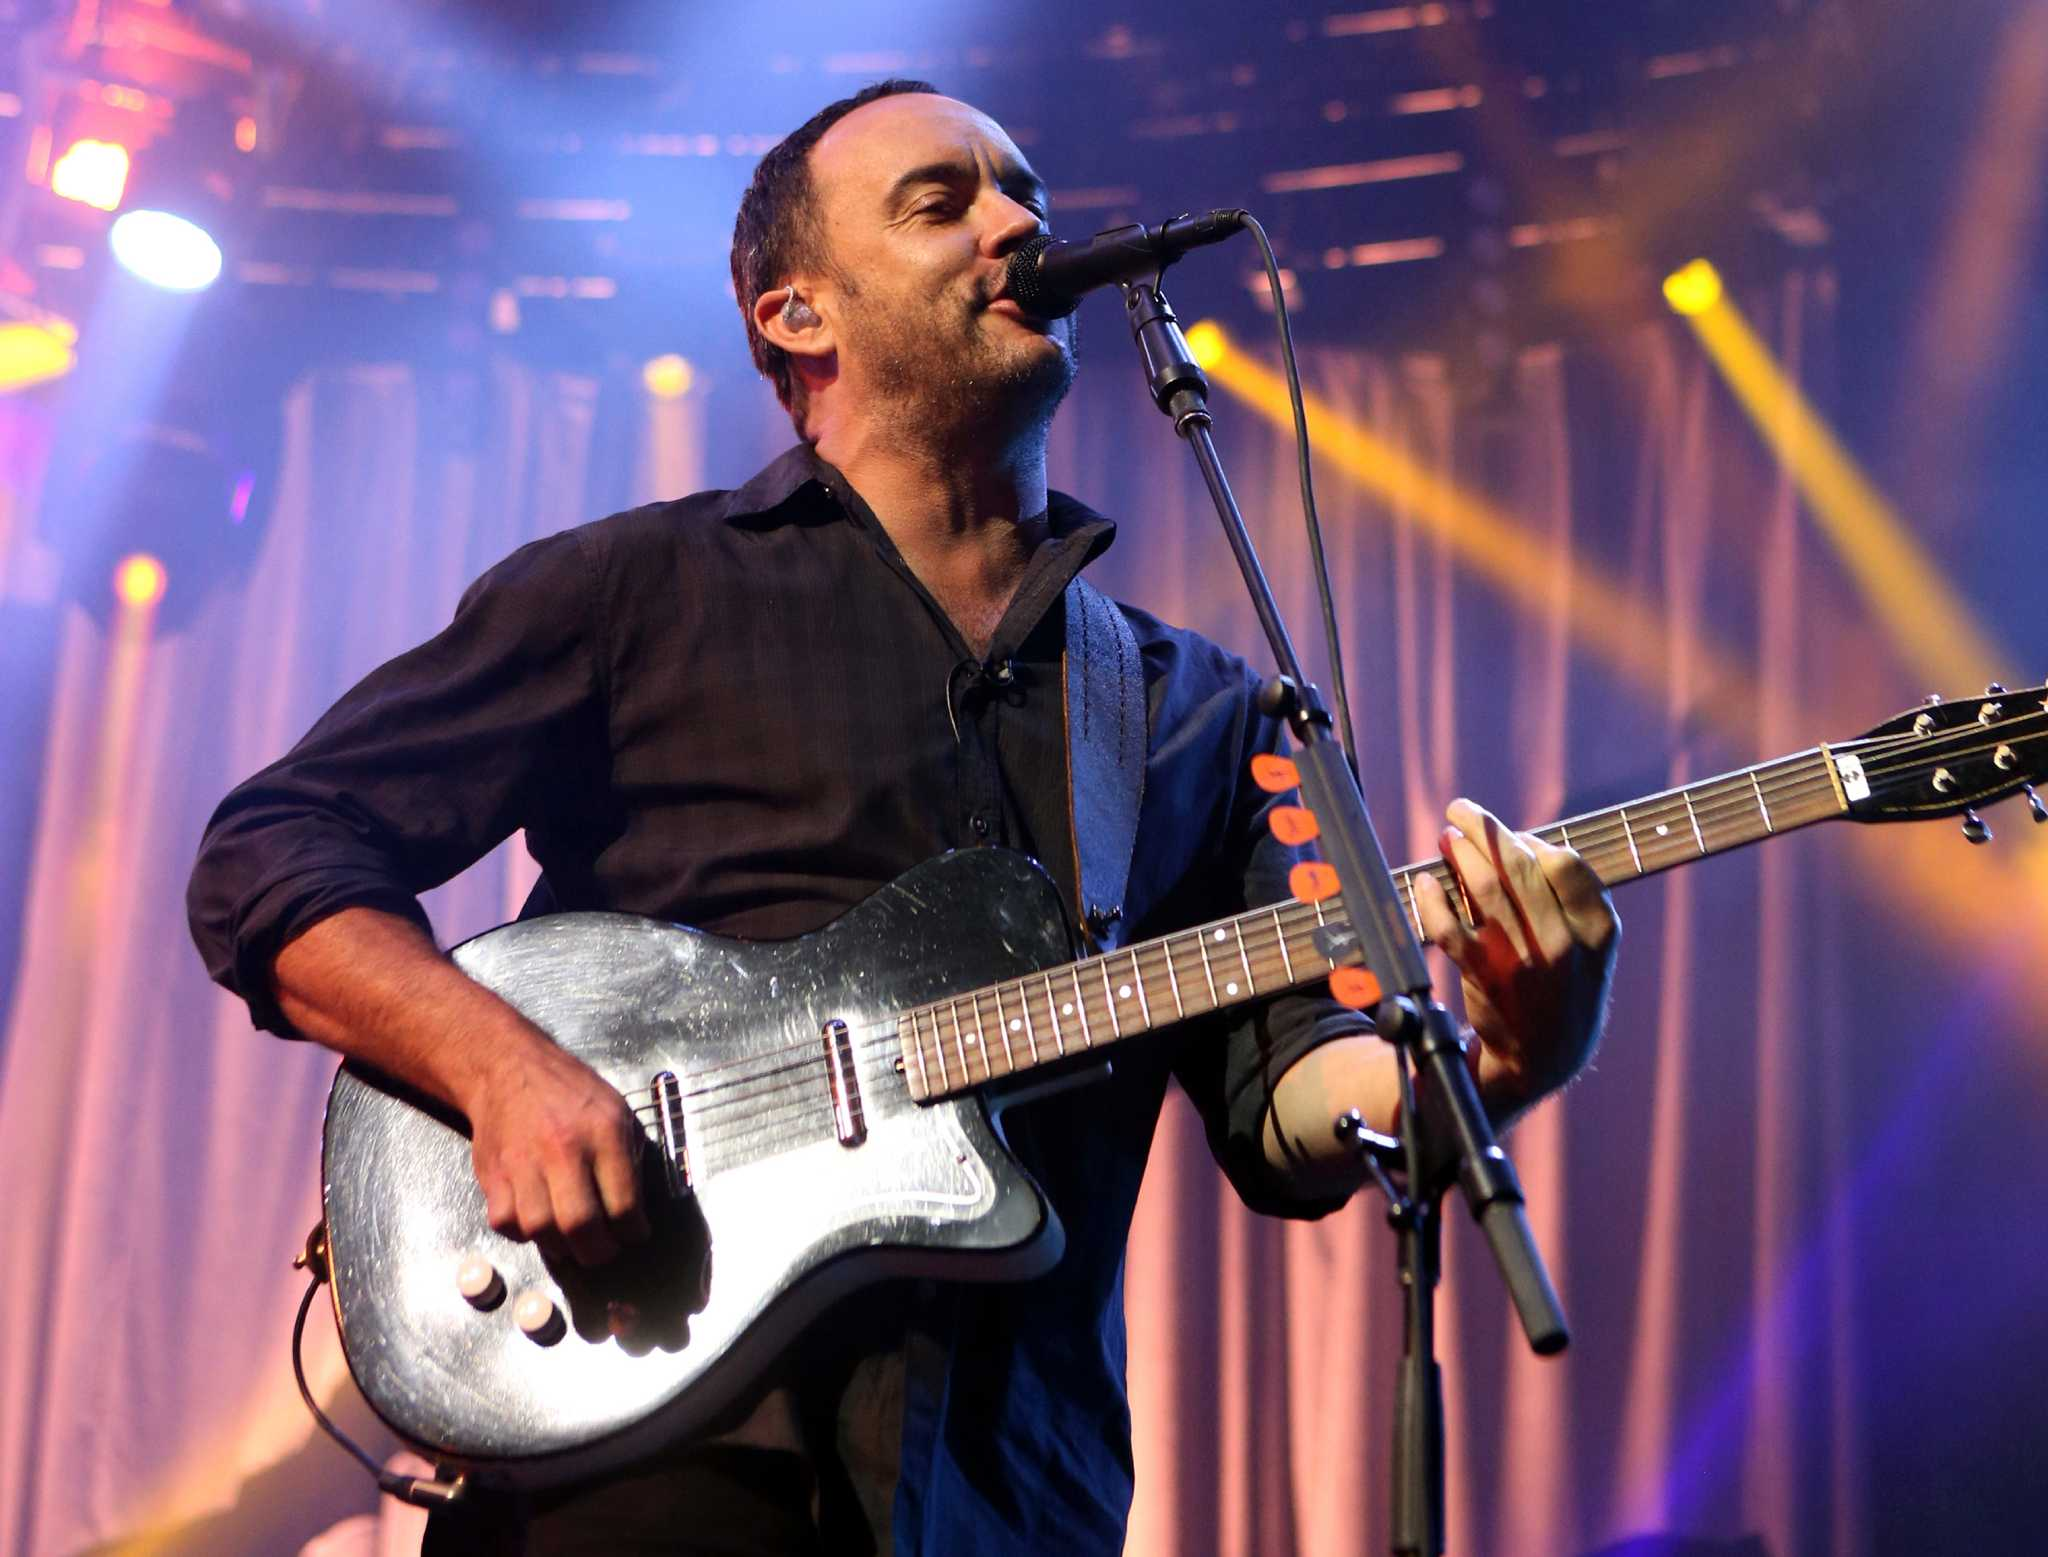 Your June concert calendar: Dave Matthews Band, Wu-Tang Clan, Death Cab For Cutie, and more